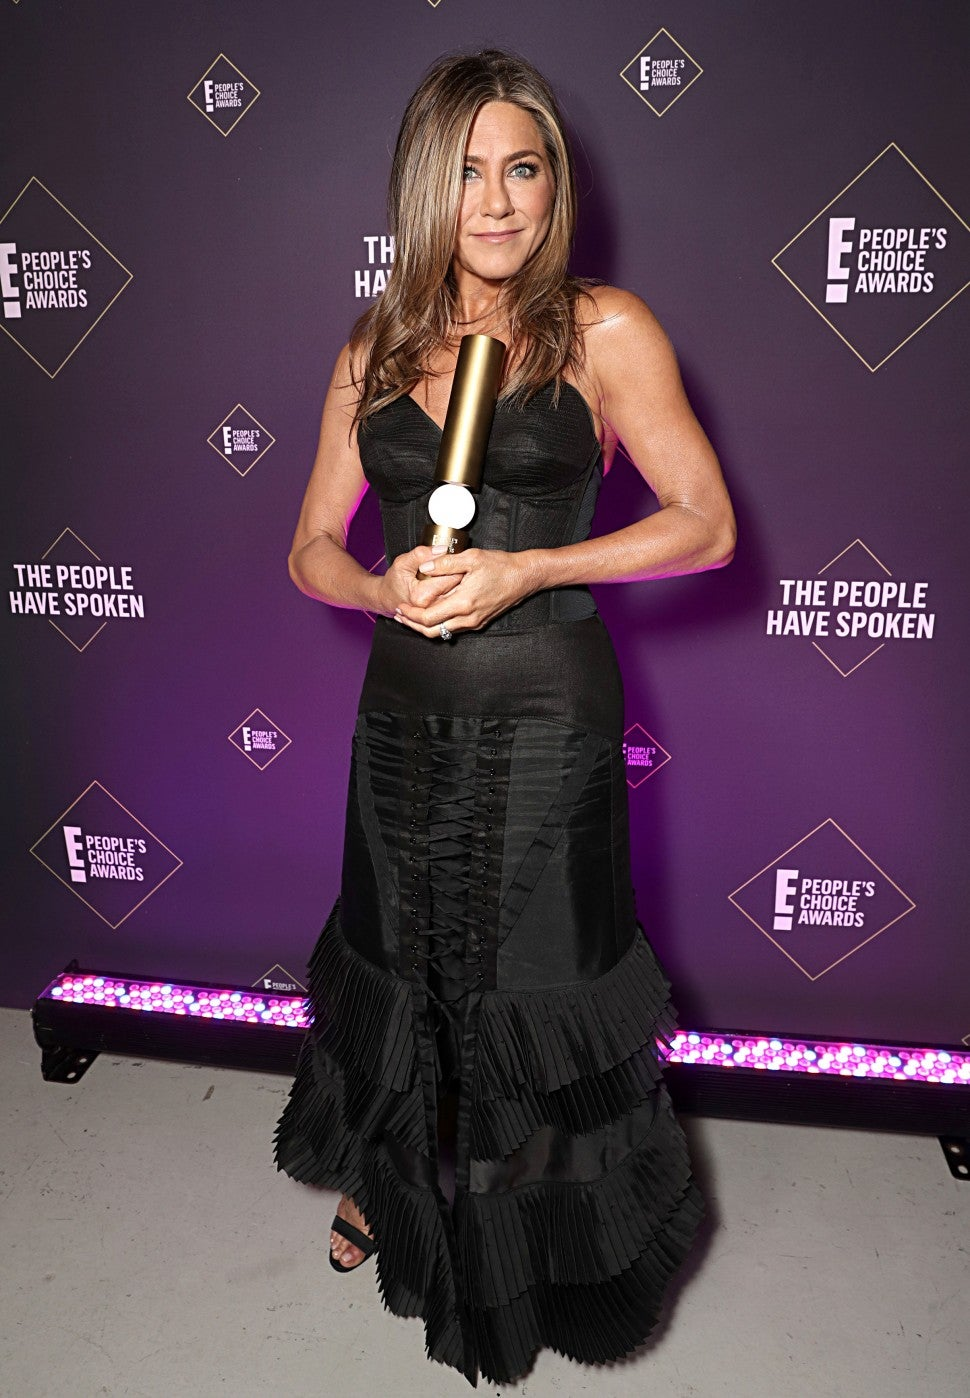 Jennifer Aniston poses backstage during the 2019 E! People's Choice Awards